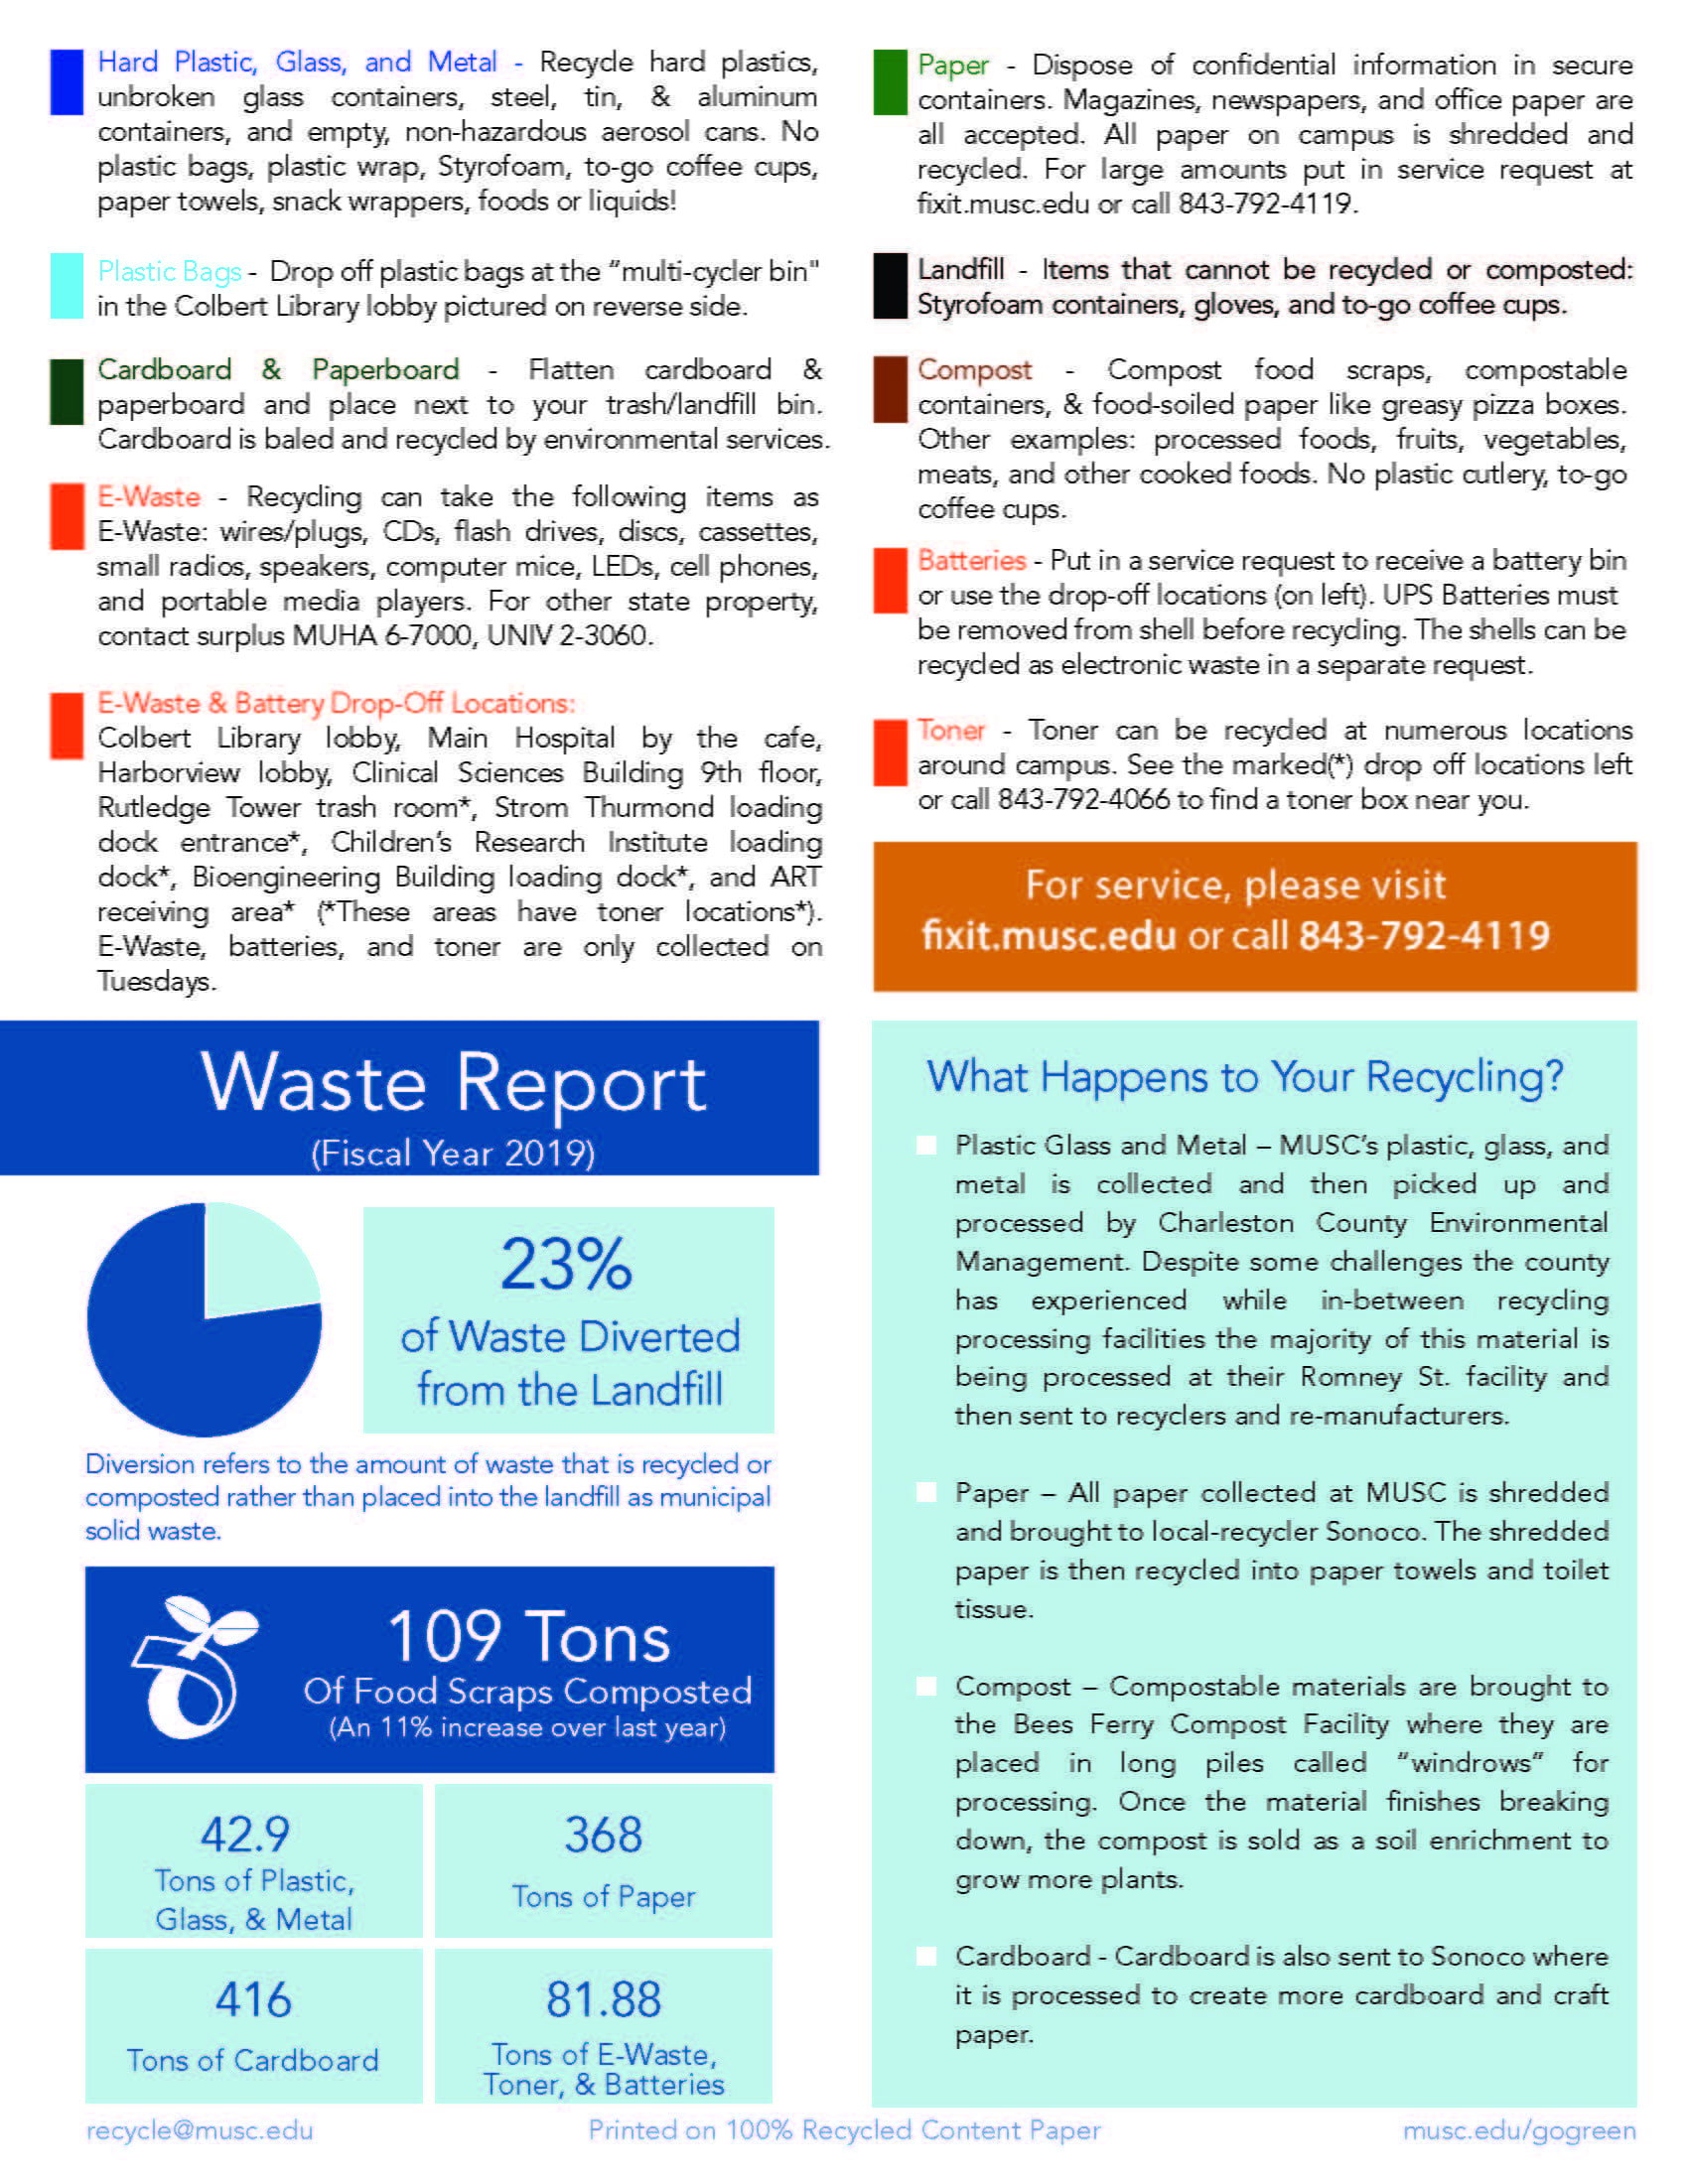 MUSC Recycling Guide P2 - infographic transcript below